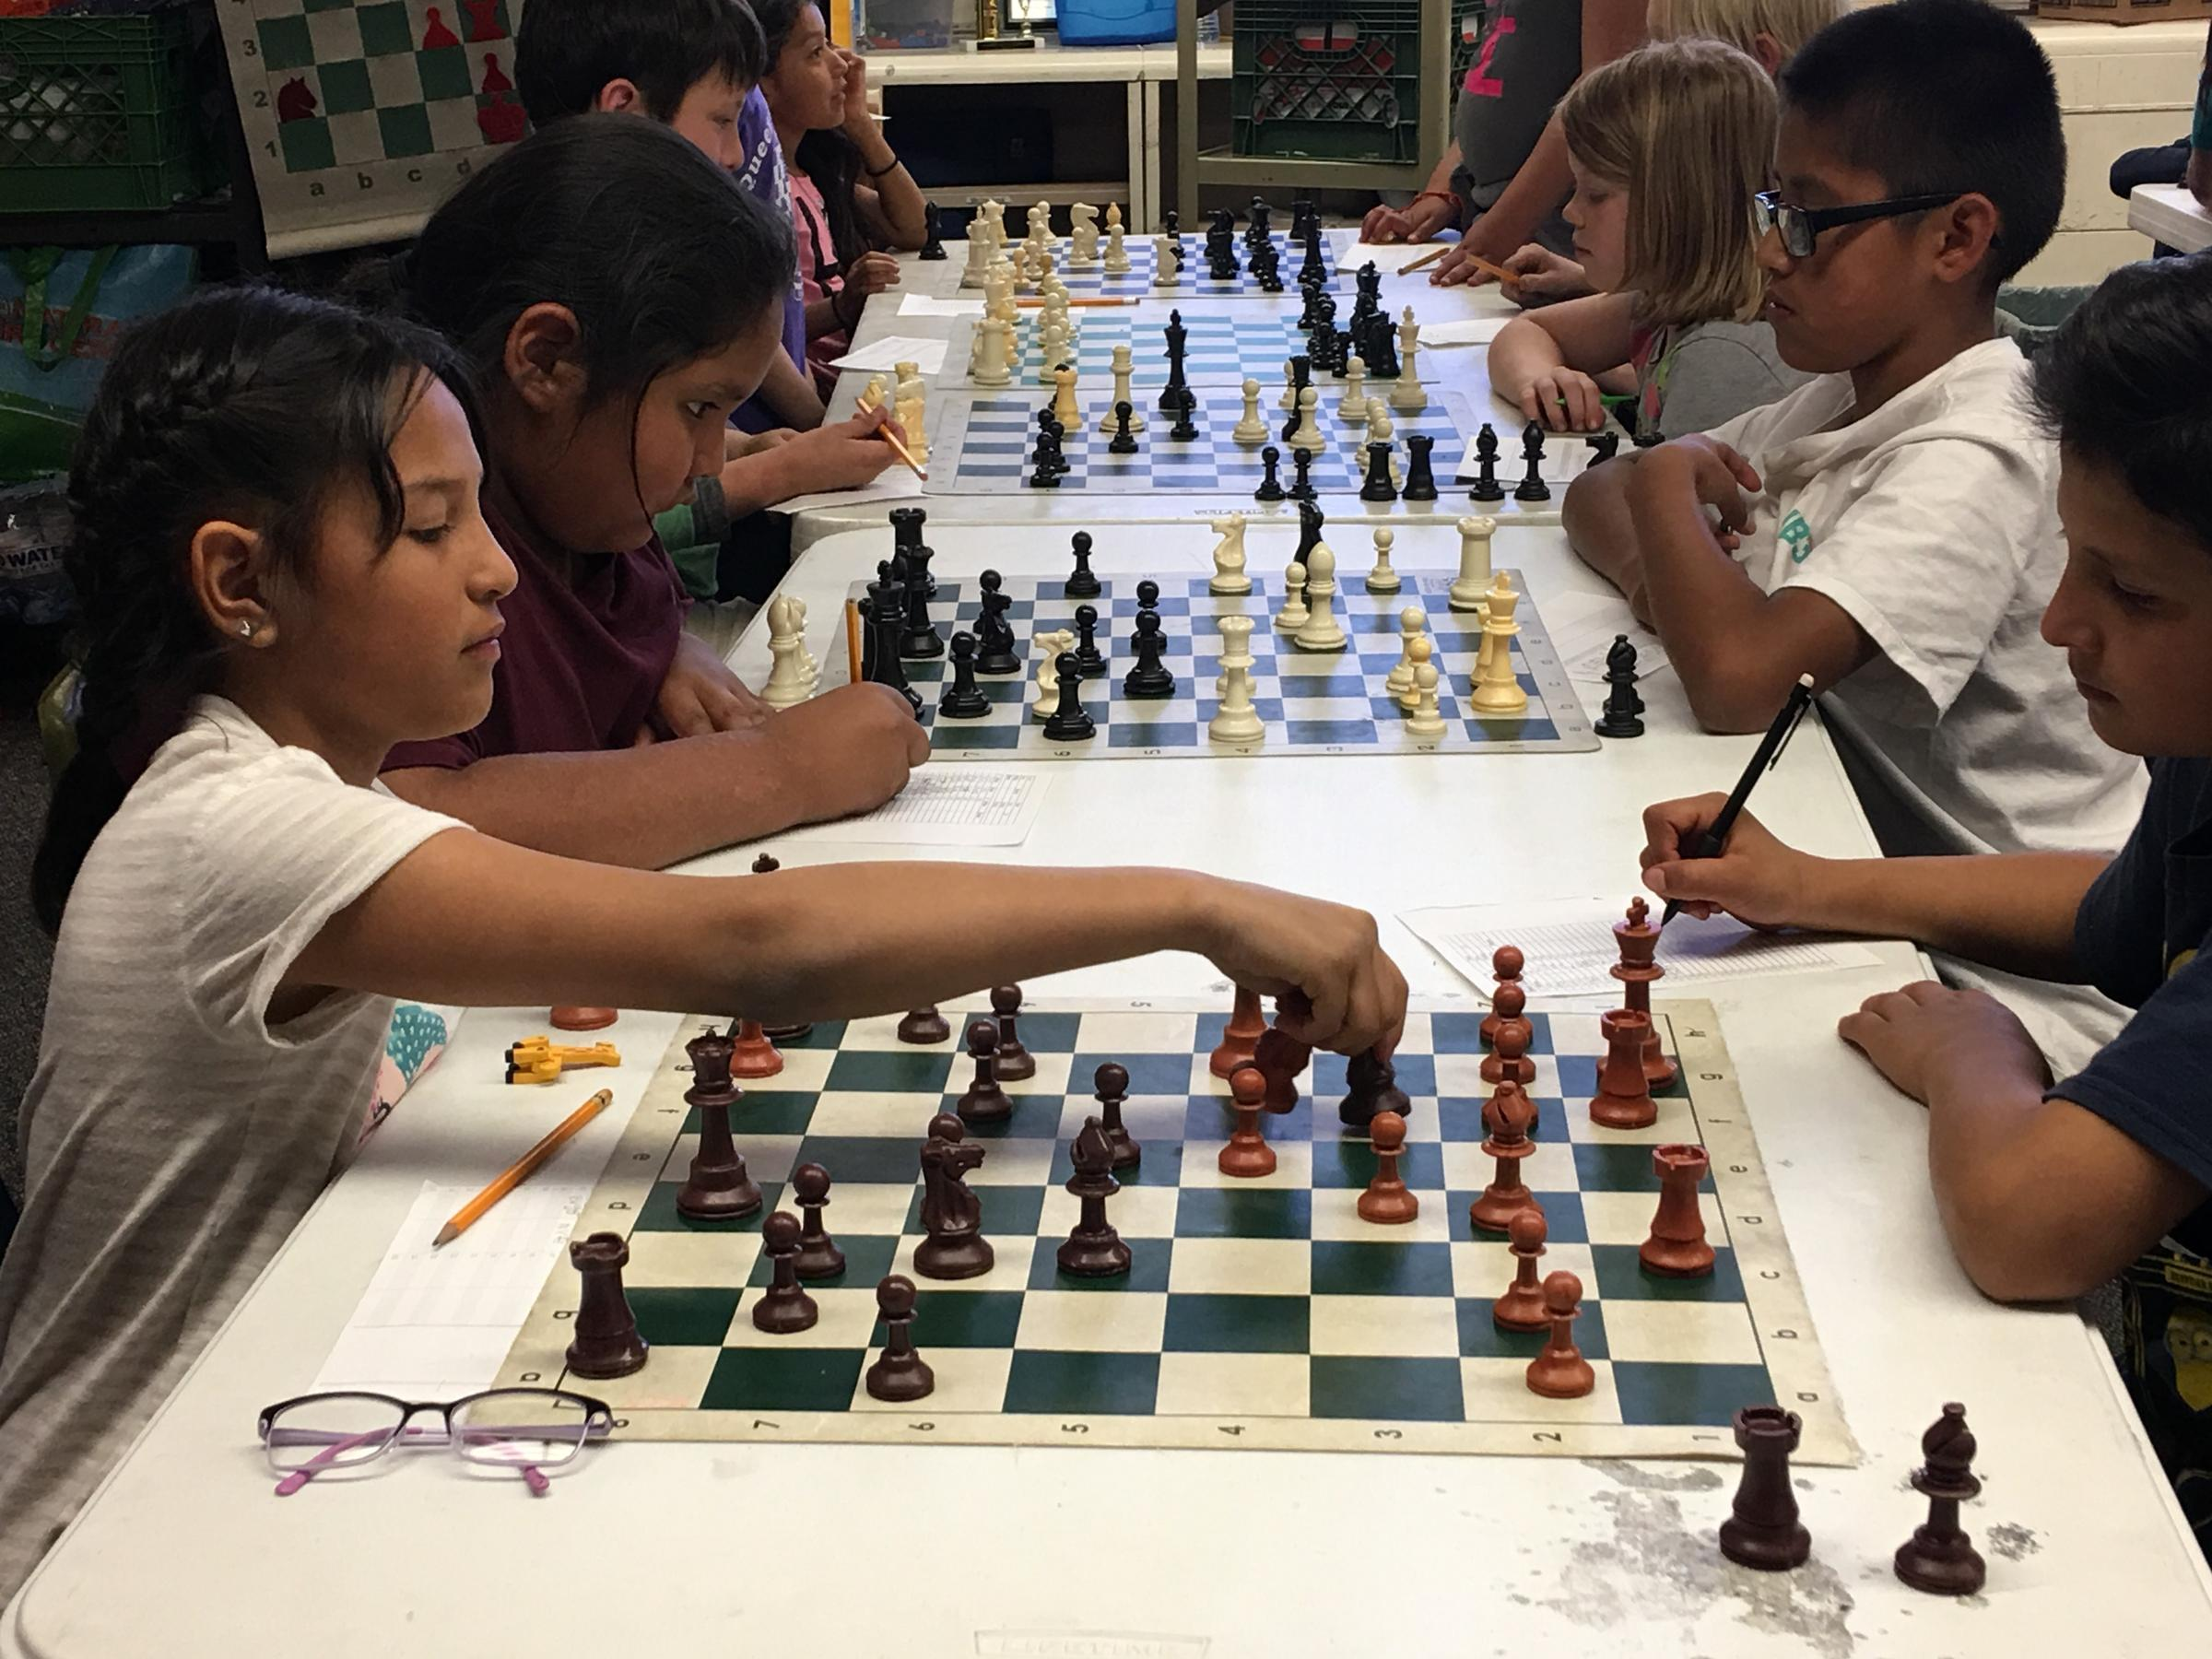 The Idea Was To Keep Kids Safe After School  Now They're Chess